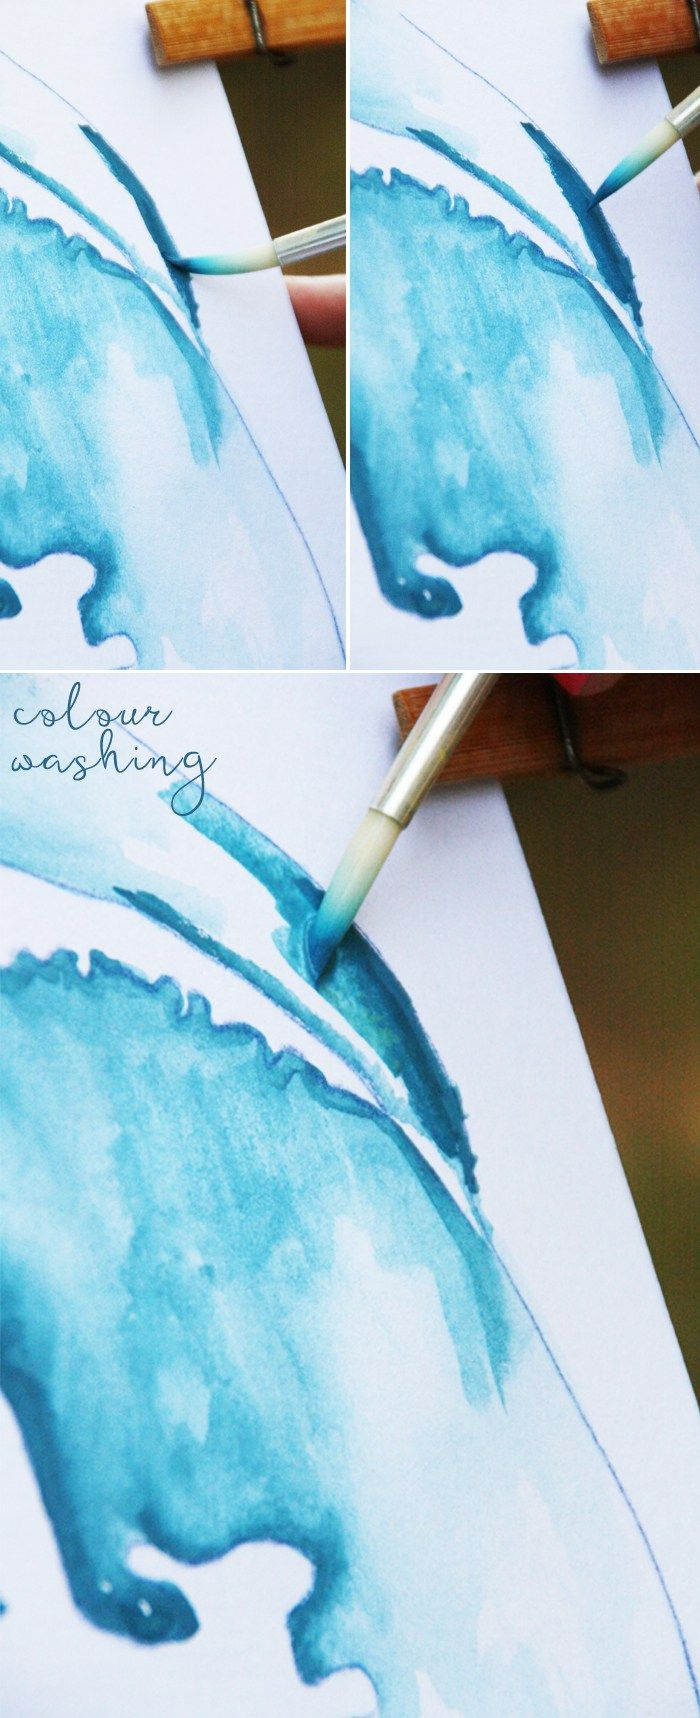 Easy Watercolour Christmas Gift DIY - you are not going to believe how easy this watercolour painting DIY is to do - try it! http://homeology.co.za/diy2/easy-watercolour-christmas-gift-diy/